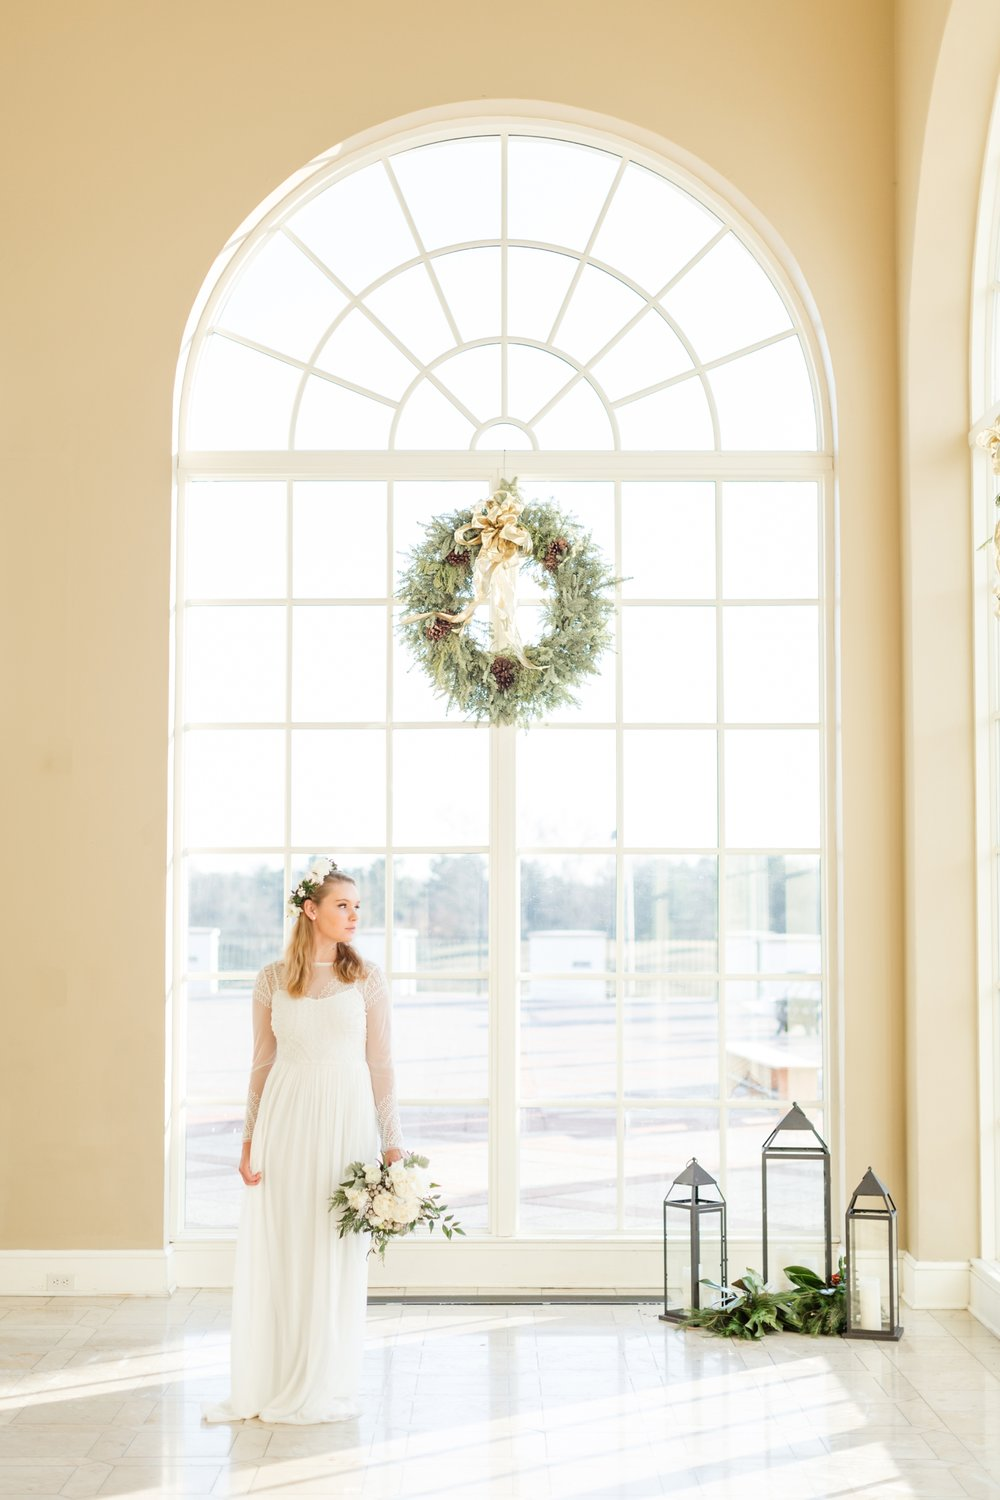 Congressional Country Club Styled Shoot-3_Congressional-Country-Club-maryland-wedding-photographer-anna-grace-photography-photo.jpg